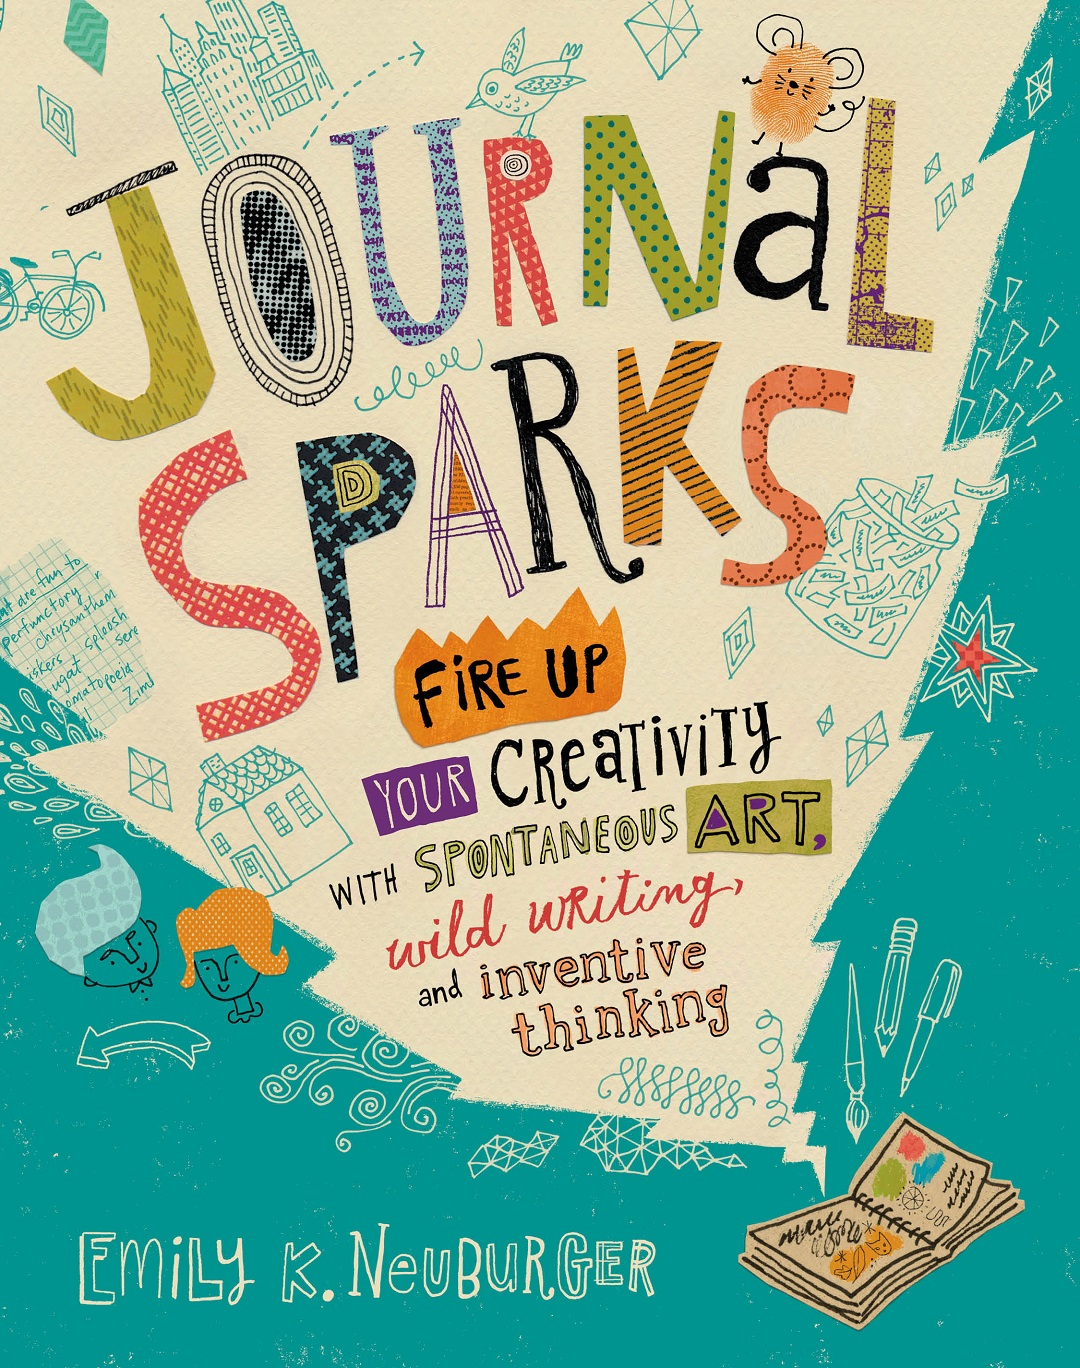 Journal Sparks by Emily Neuberger